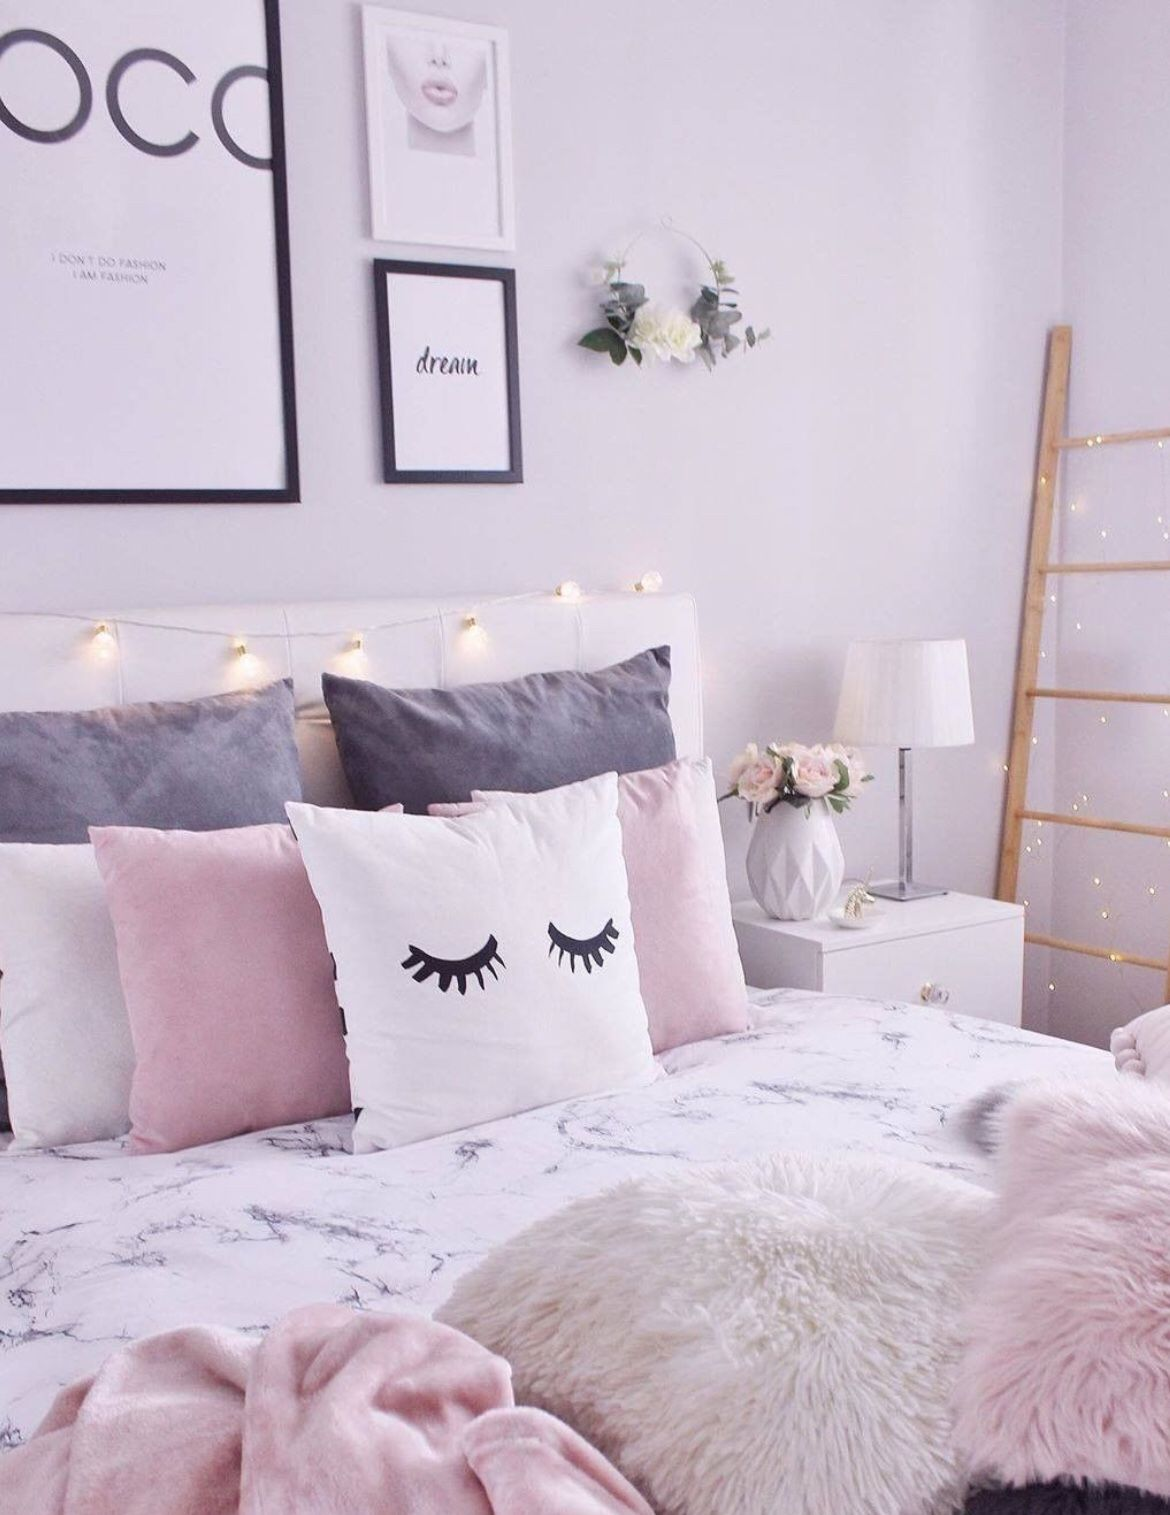 40 Aesthetic Room Decors To Add To Your Room In 2021 Aesthetic Room Decor Aesthetic Room Room Decor Bedroom design size 4x6